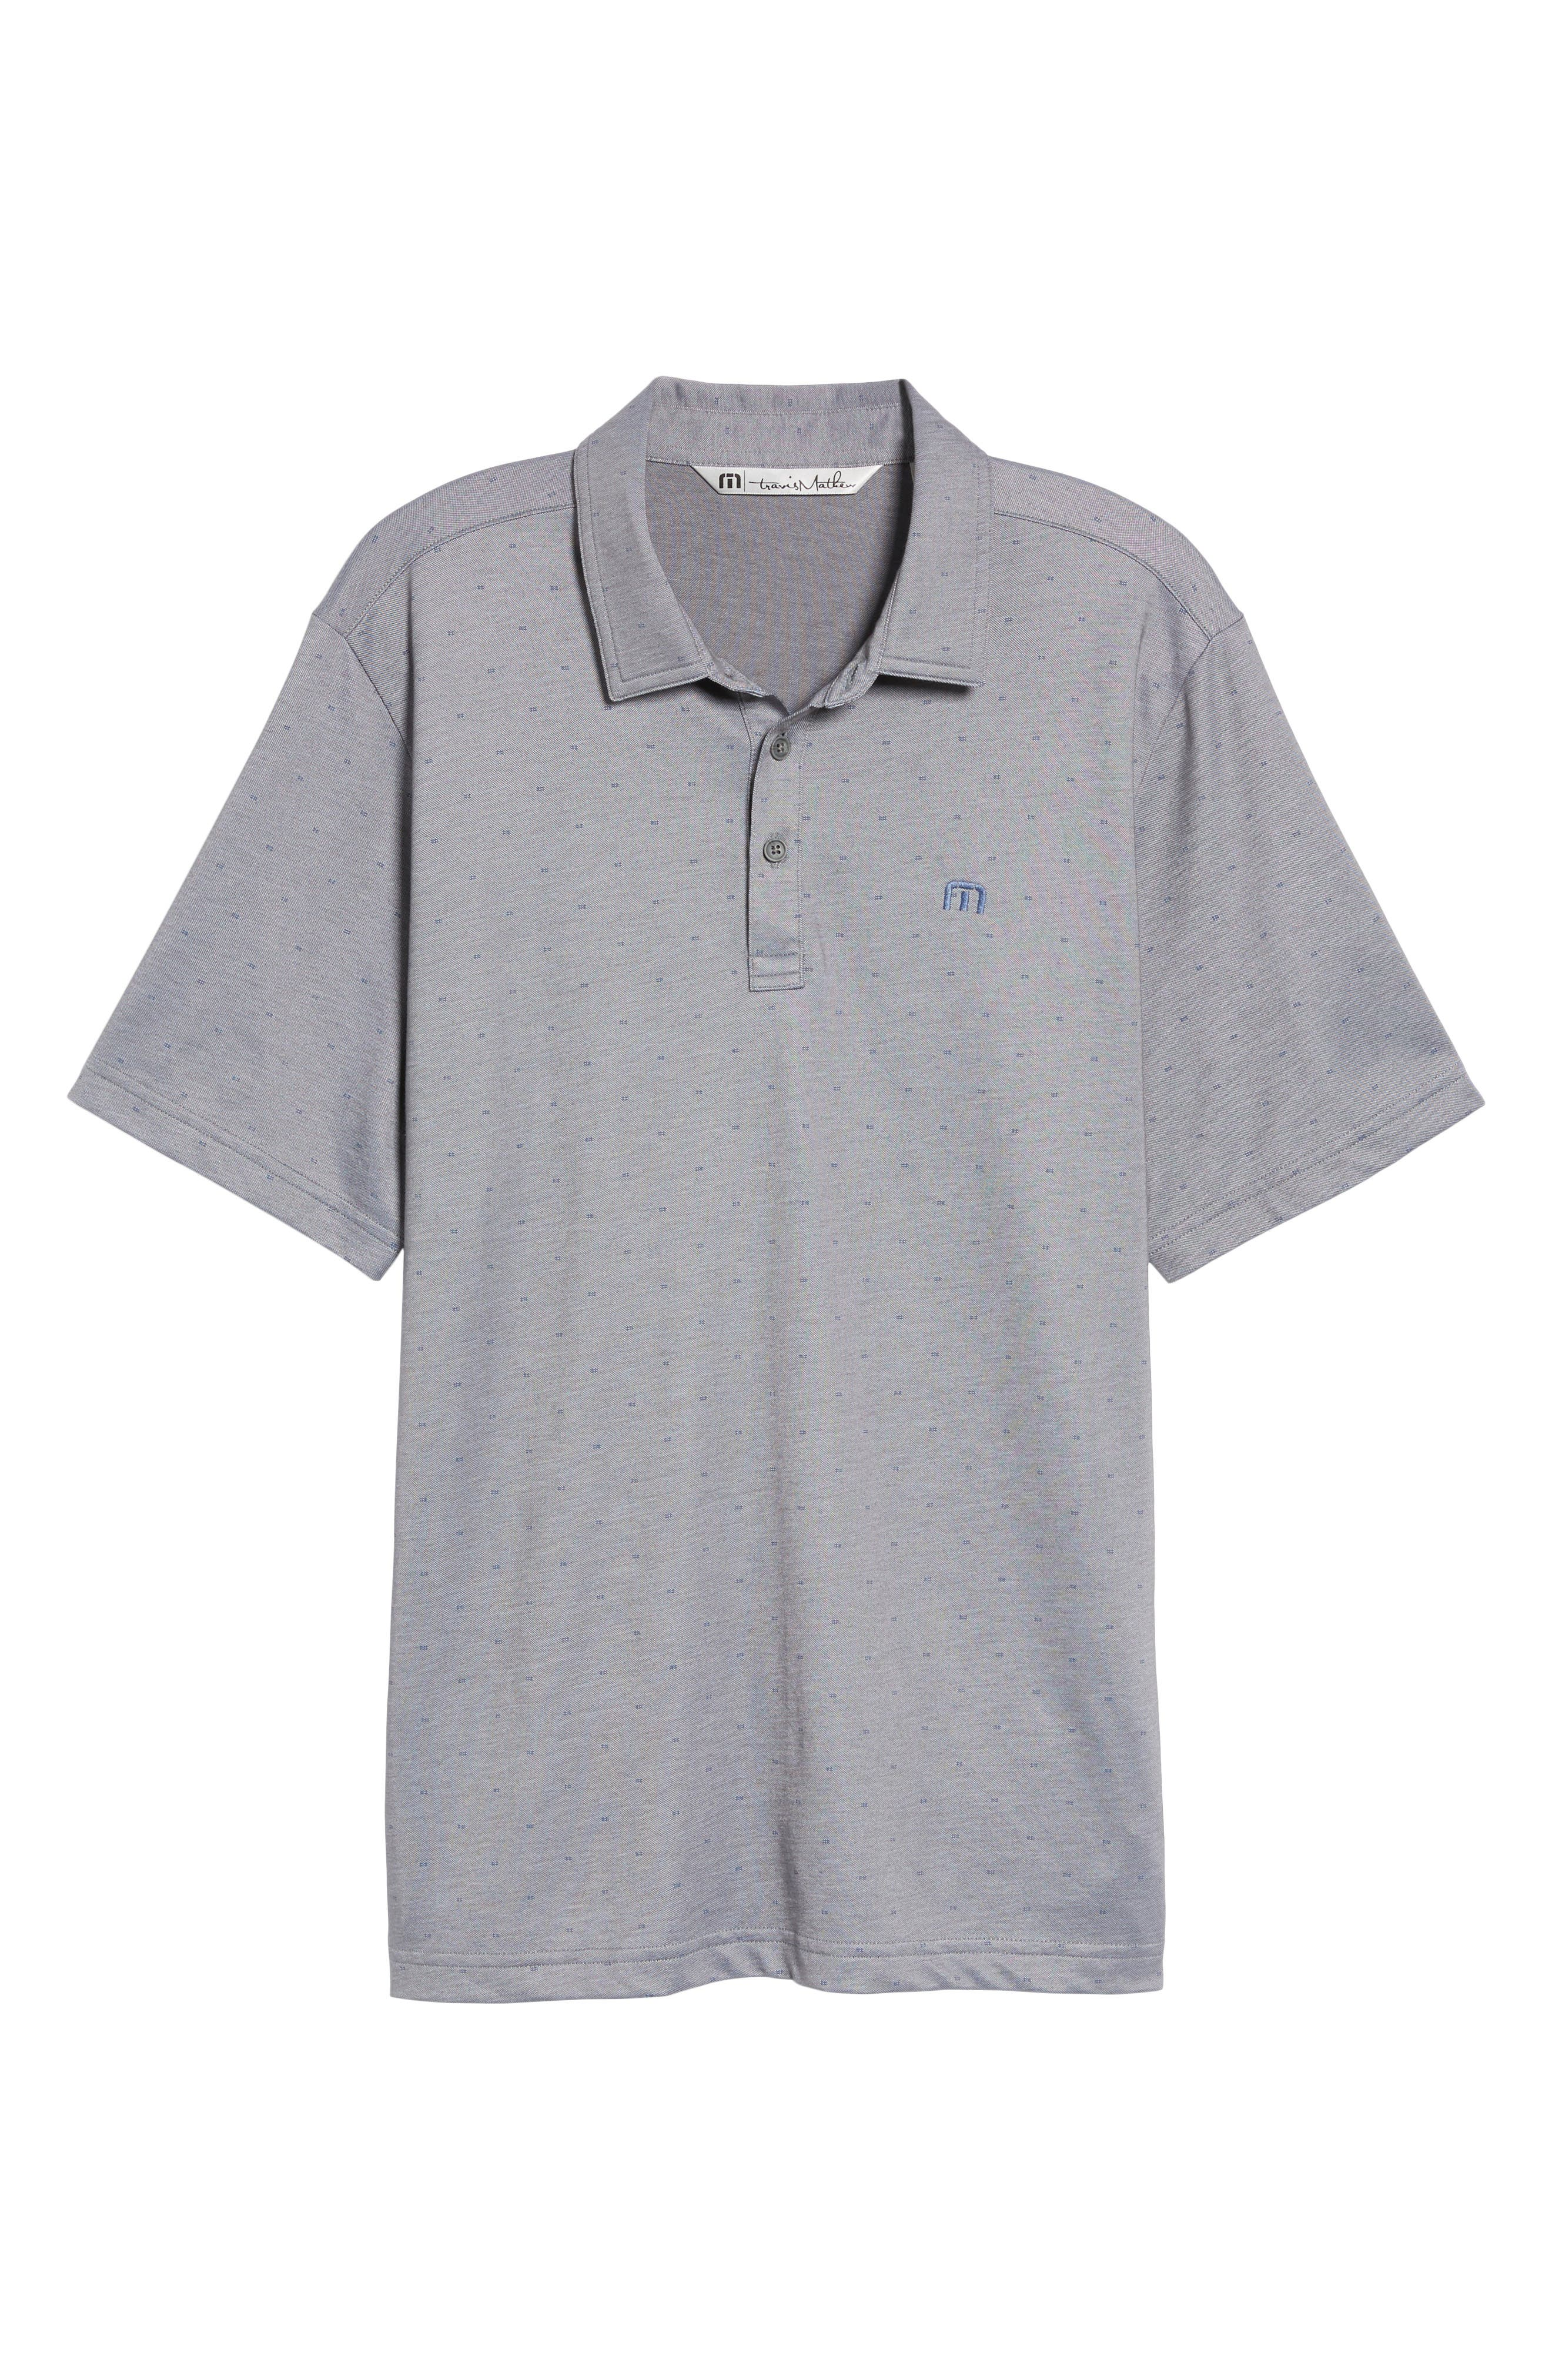 Thackerson Jacquard Piqué Polo,                             Alternate thumbnail 6, color,                             021